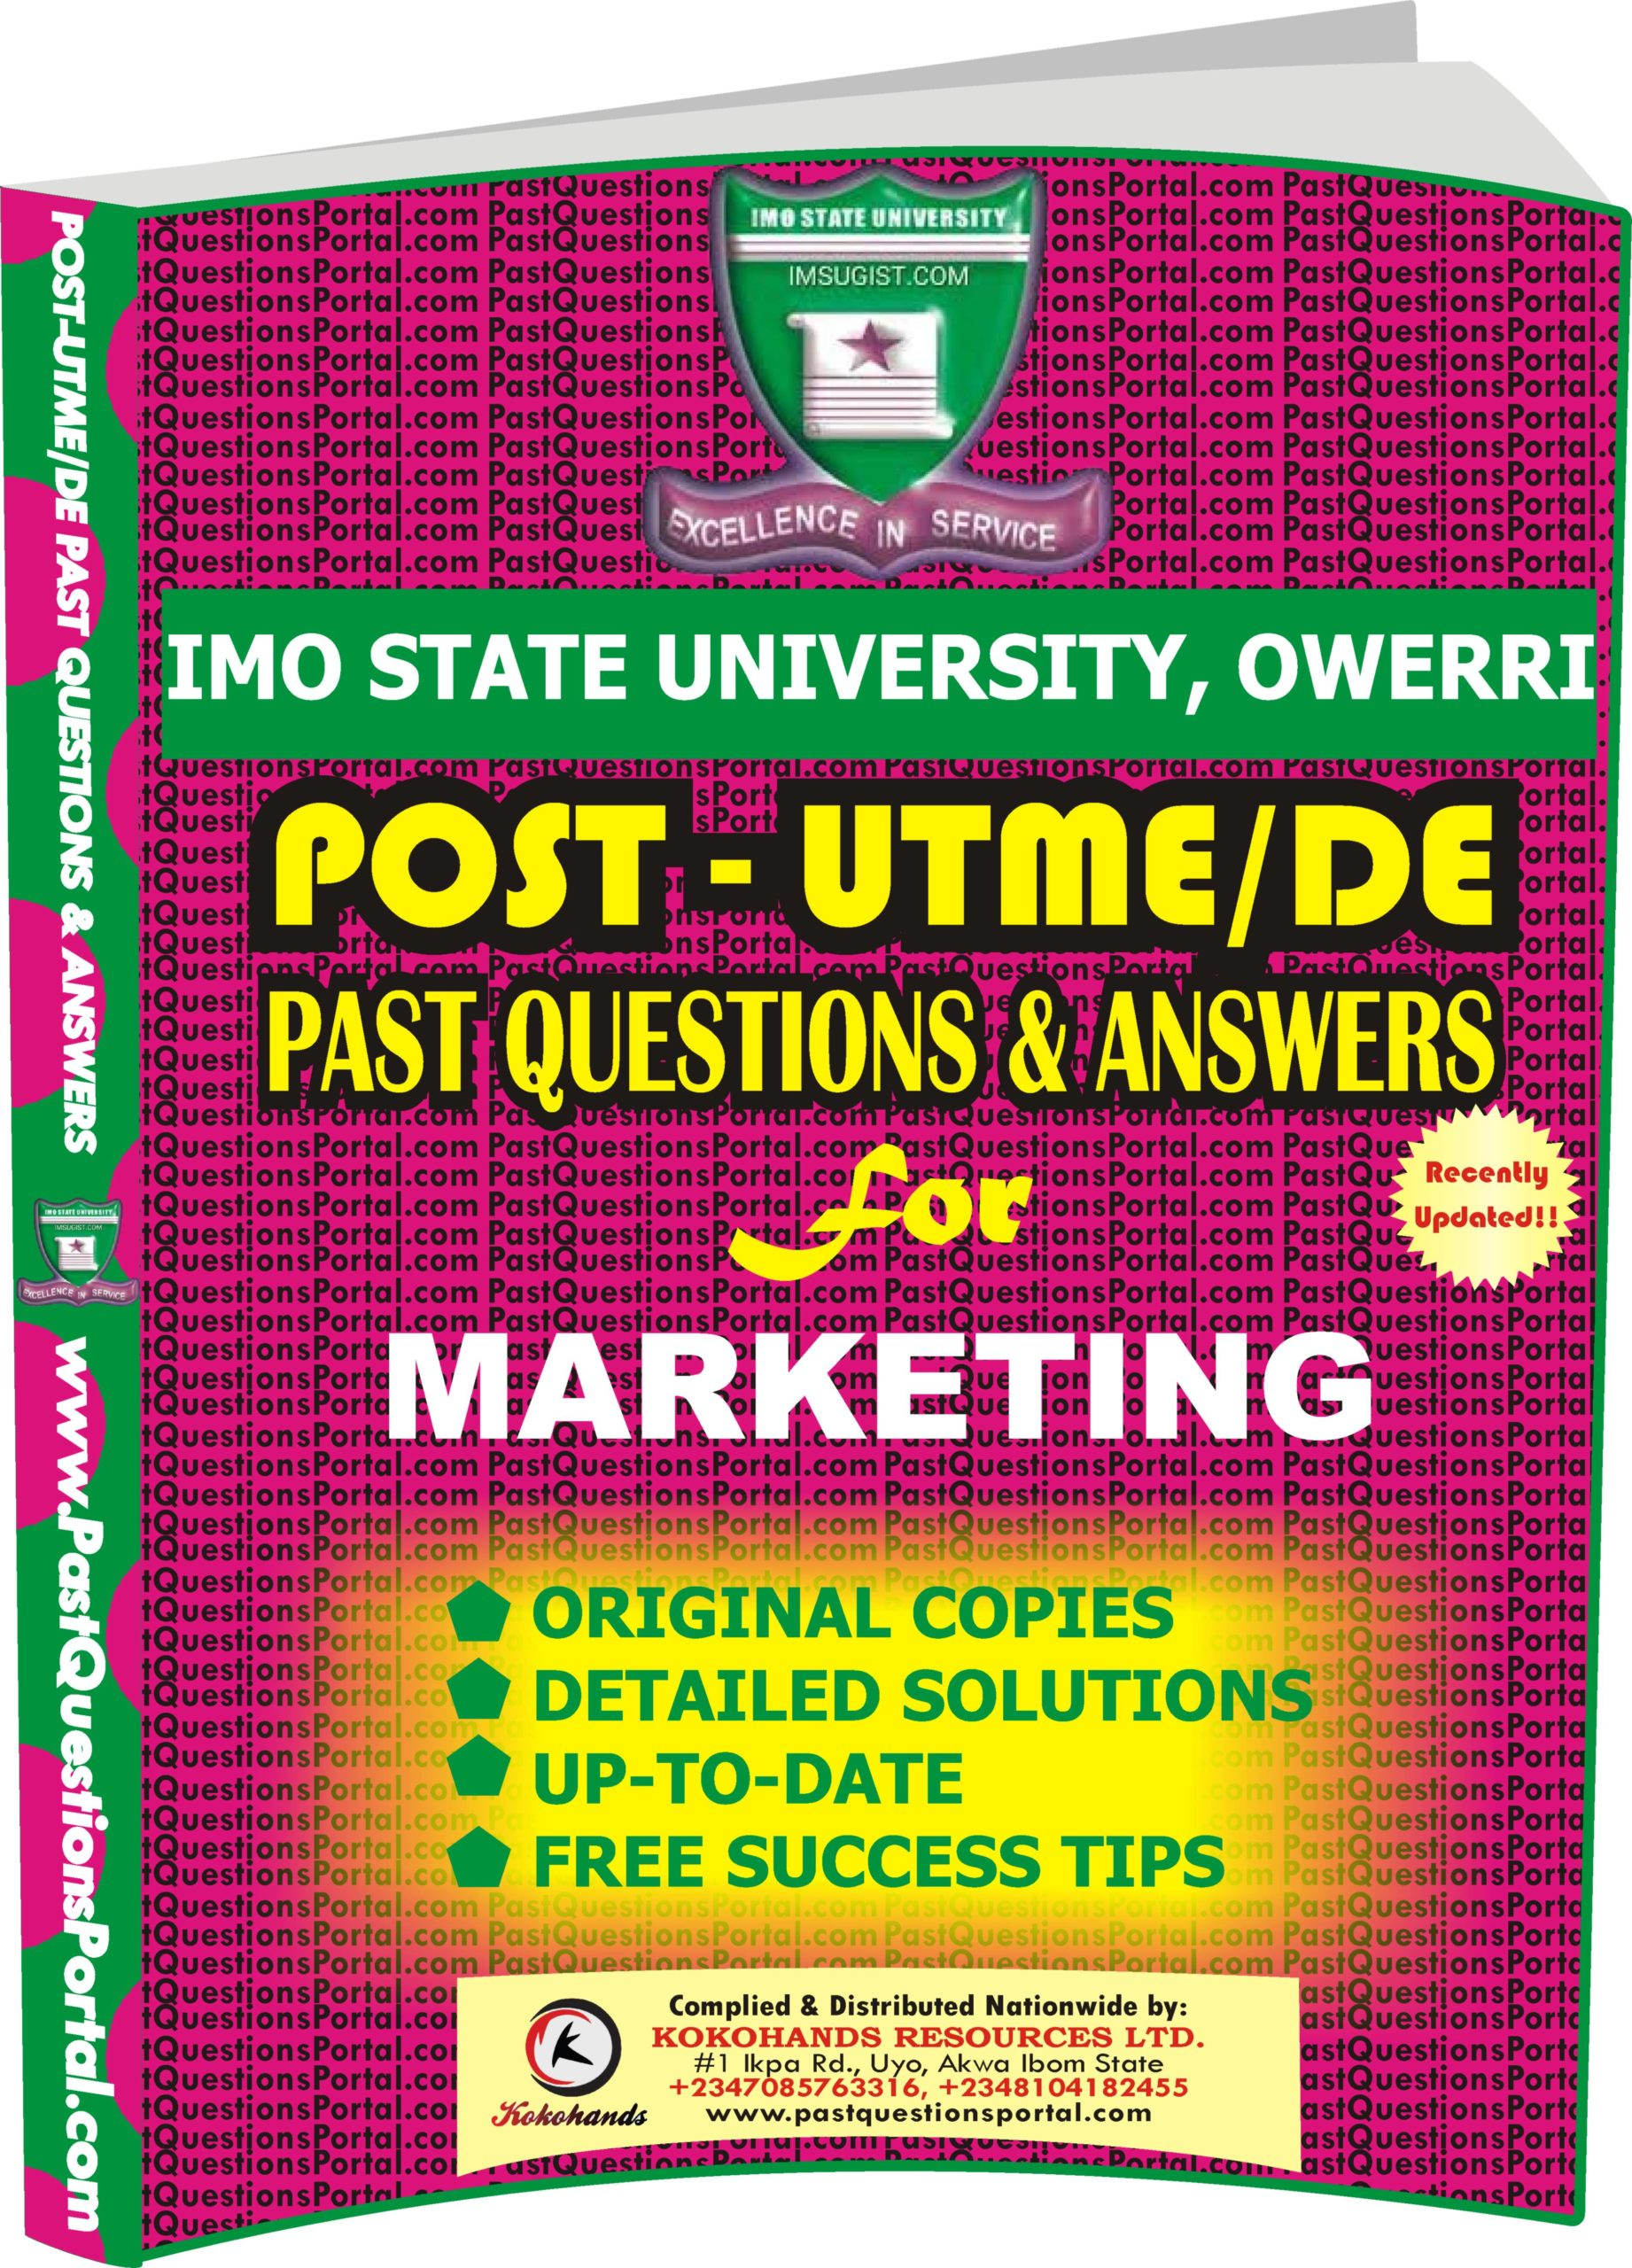 IMSU Post UTME Past Questions for MARKETING